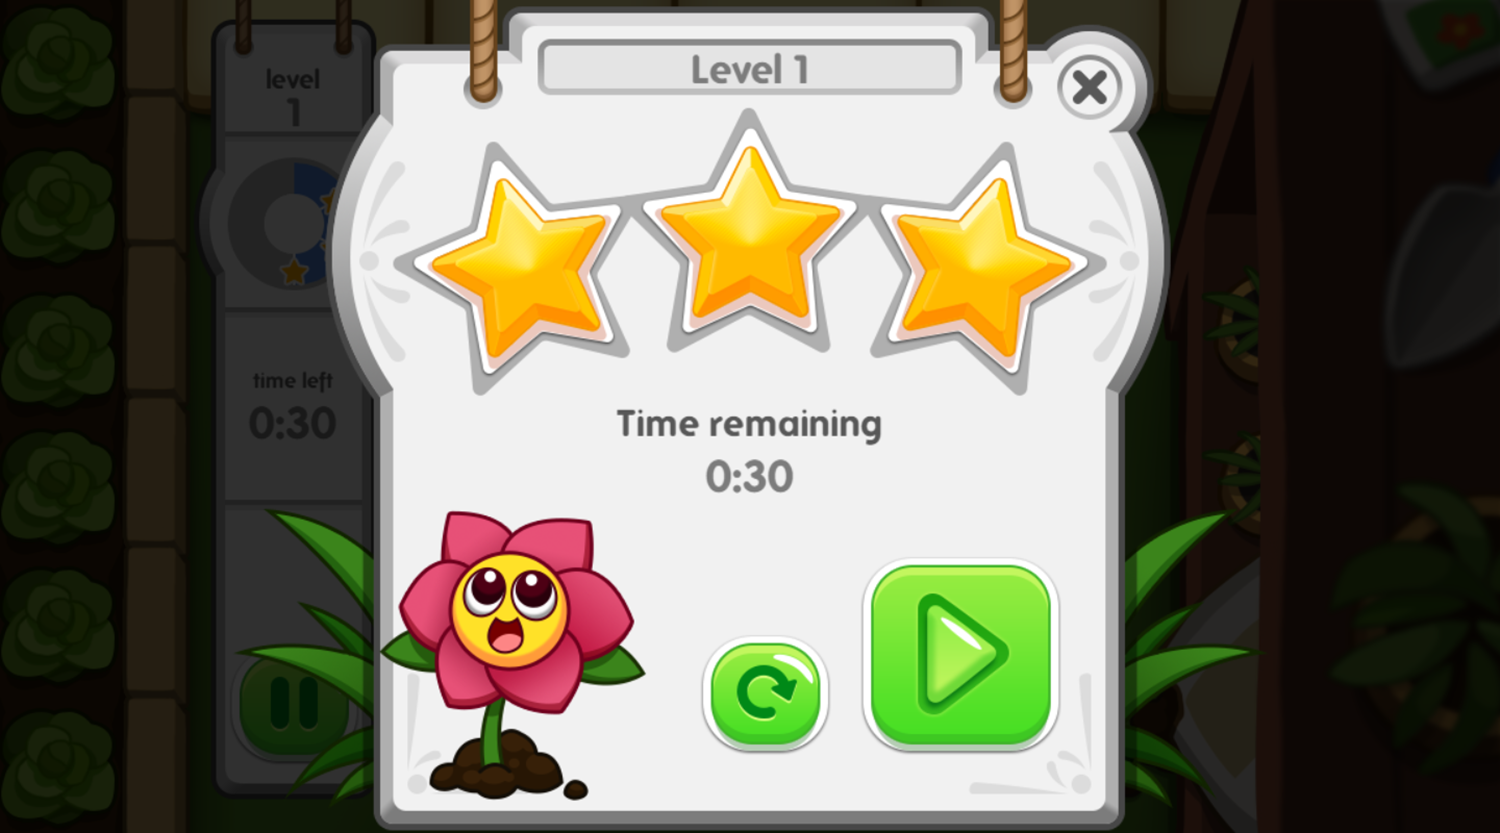 Daisy's Plumber Puzzle Game Level Complete Screenshot.